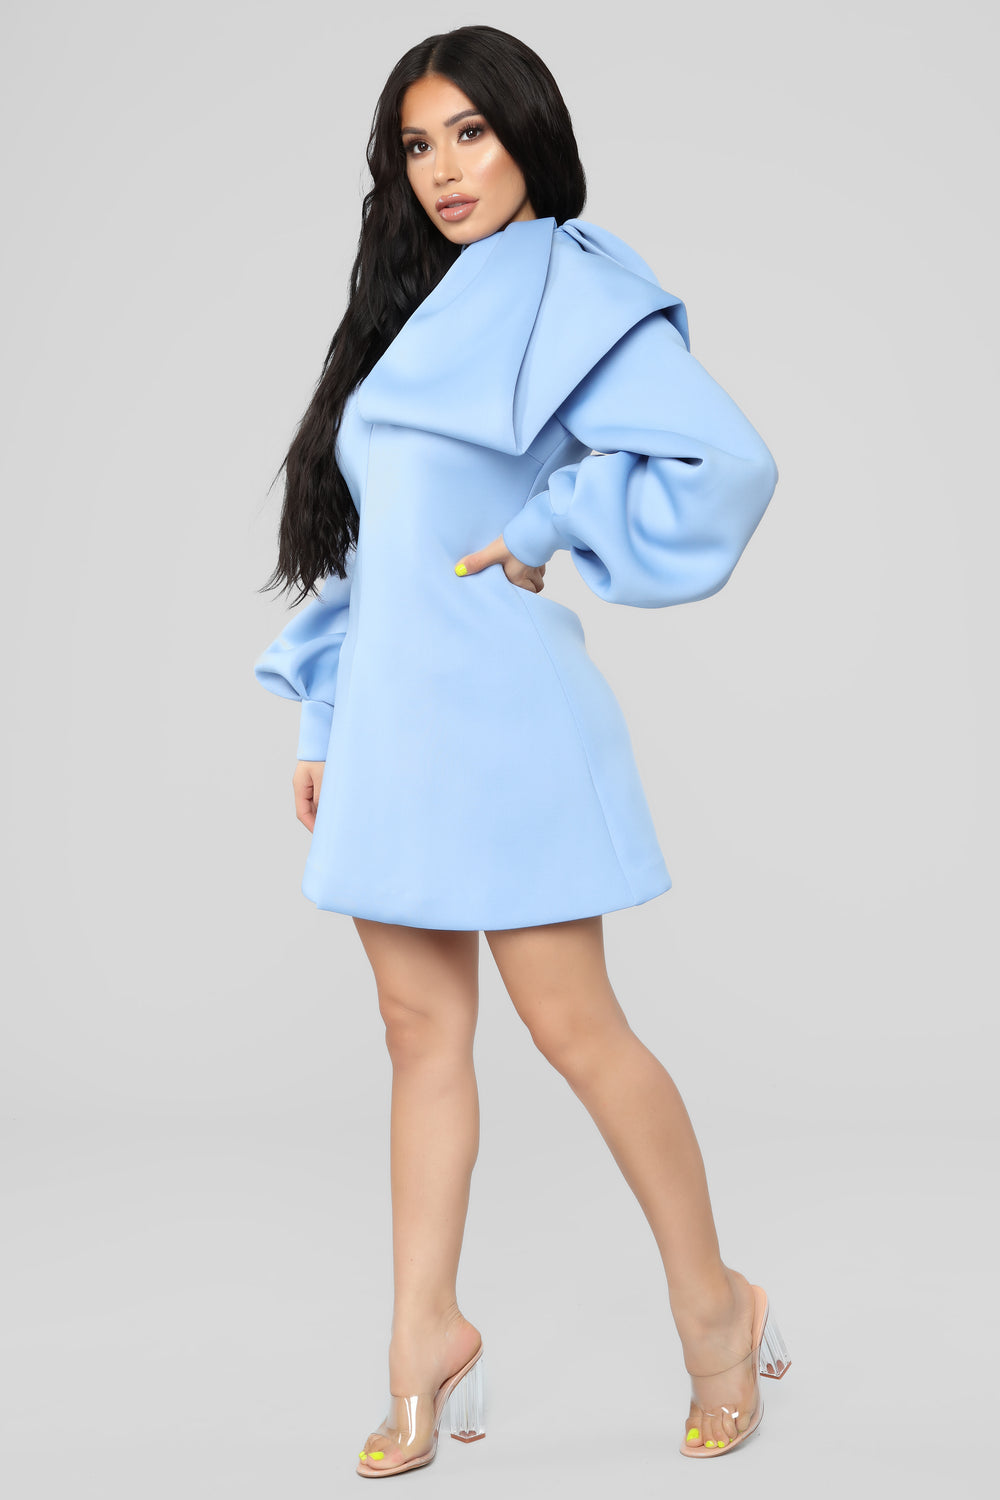 Contagious Love Dress - Light Blue